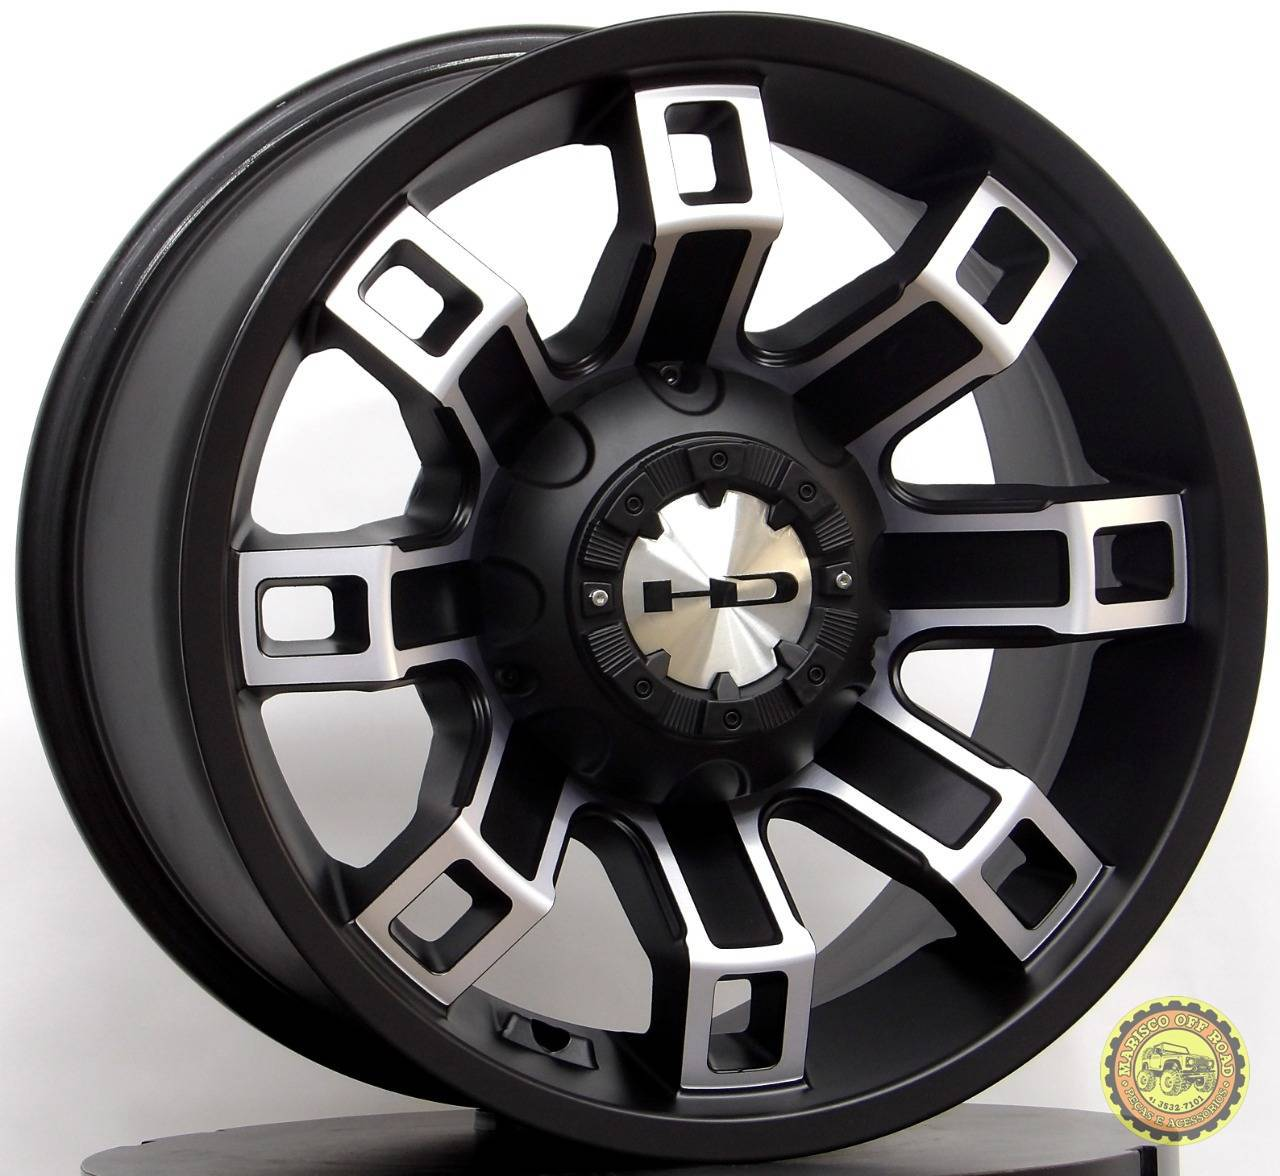 Roda 17x9 HD01, furação 5x127, off set 0 WRANGLER JK - Marisco Off Road